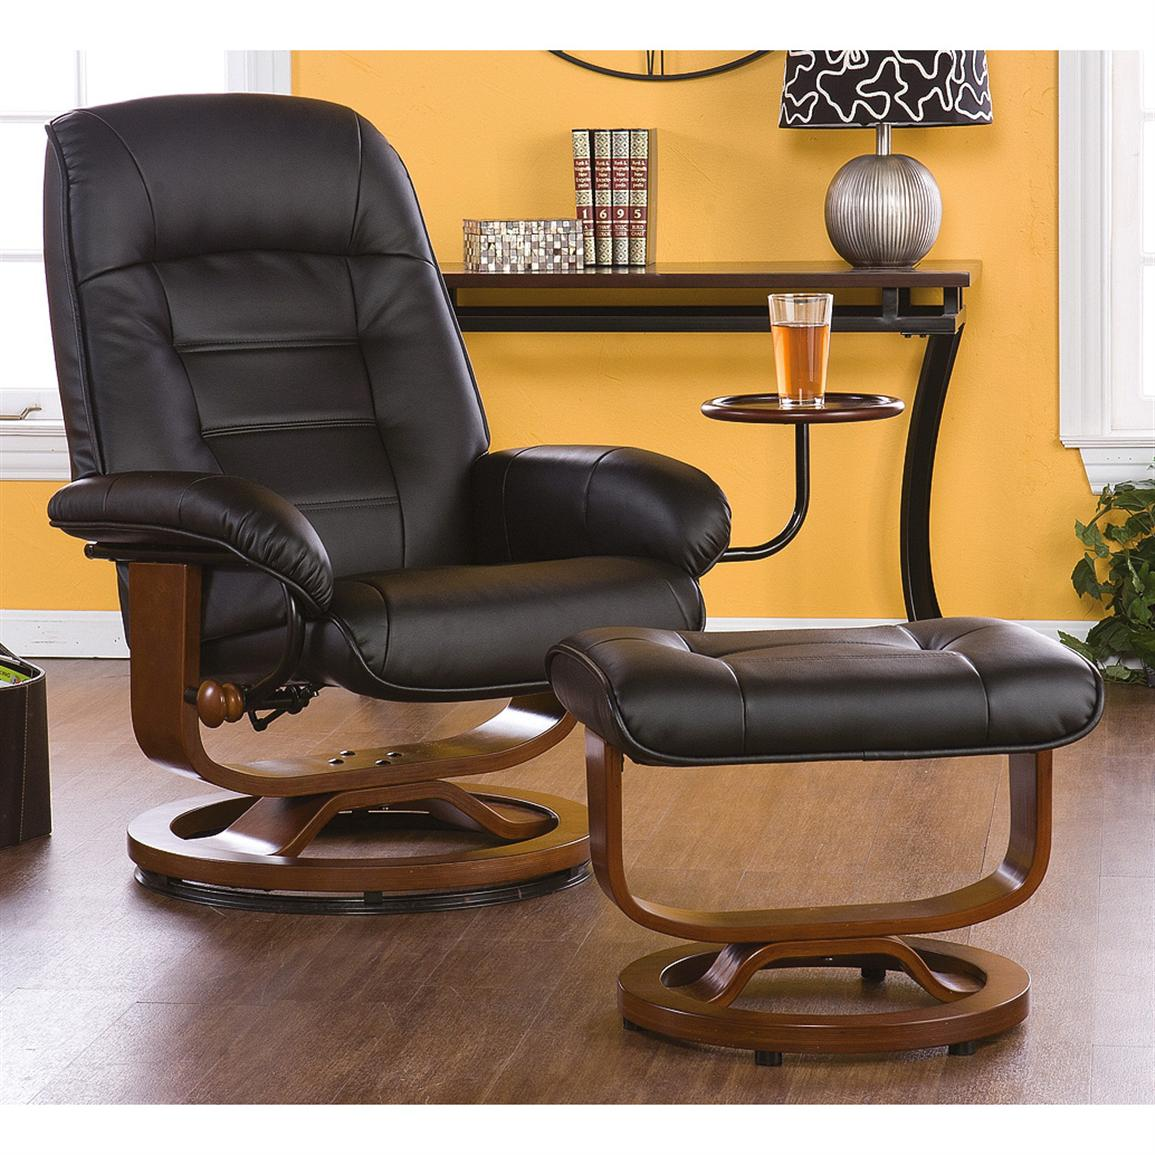 Hemphill Leather Recliner and Ottoman, Black